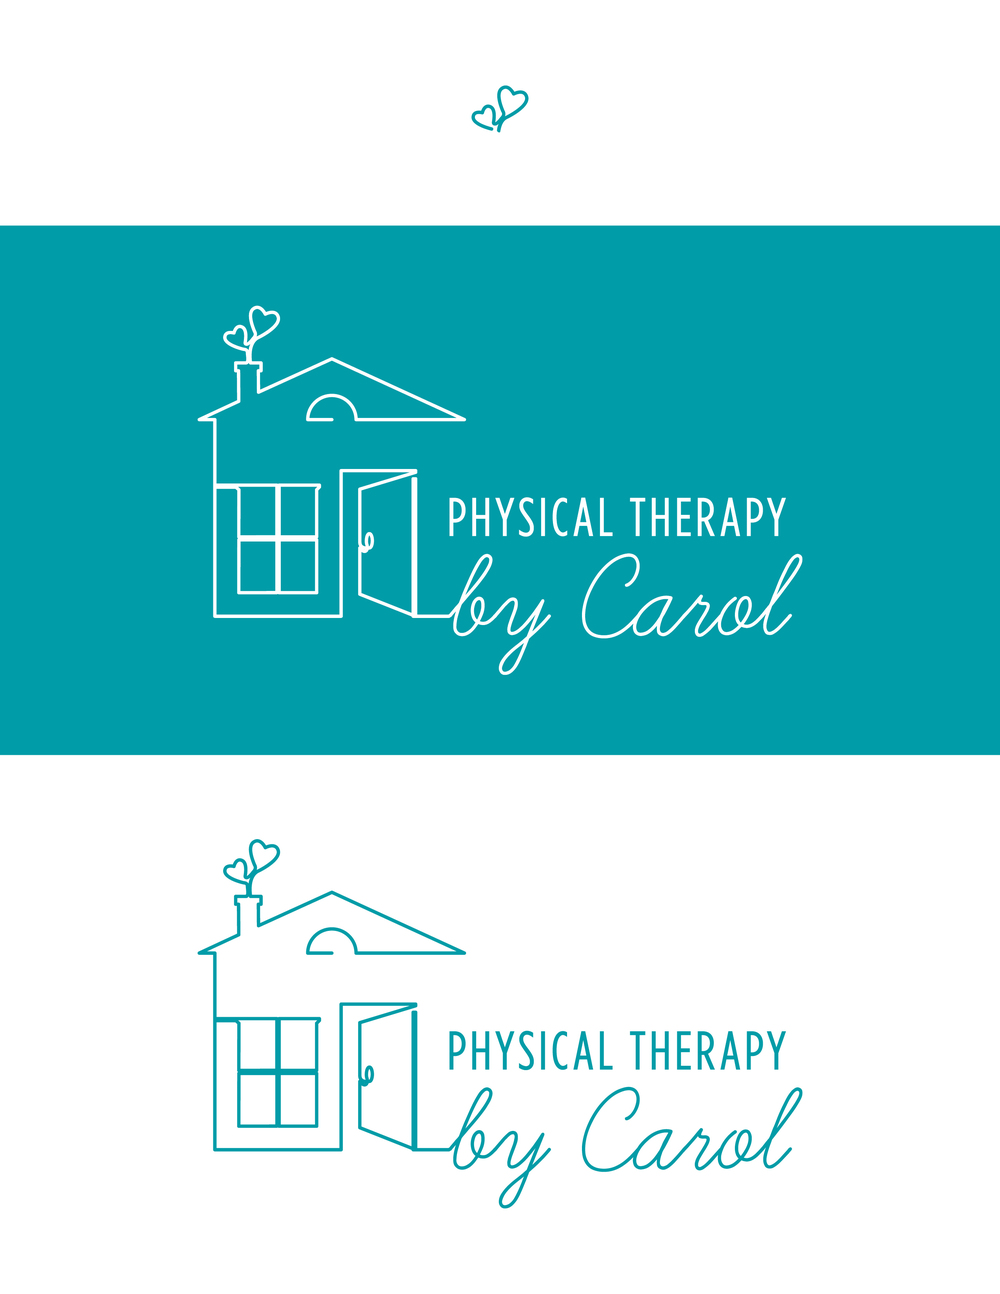 Logo Design for PT by Carol